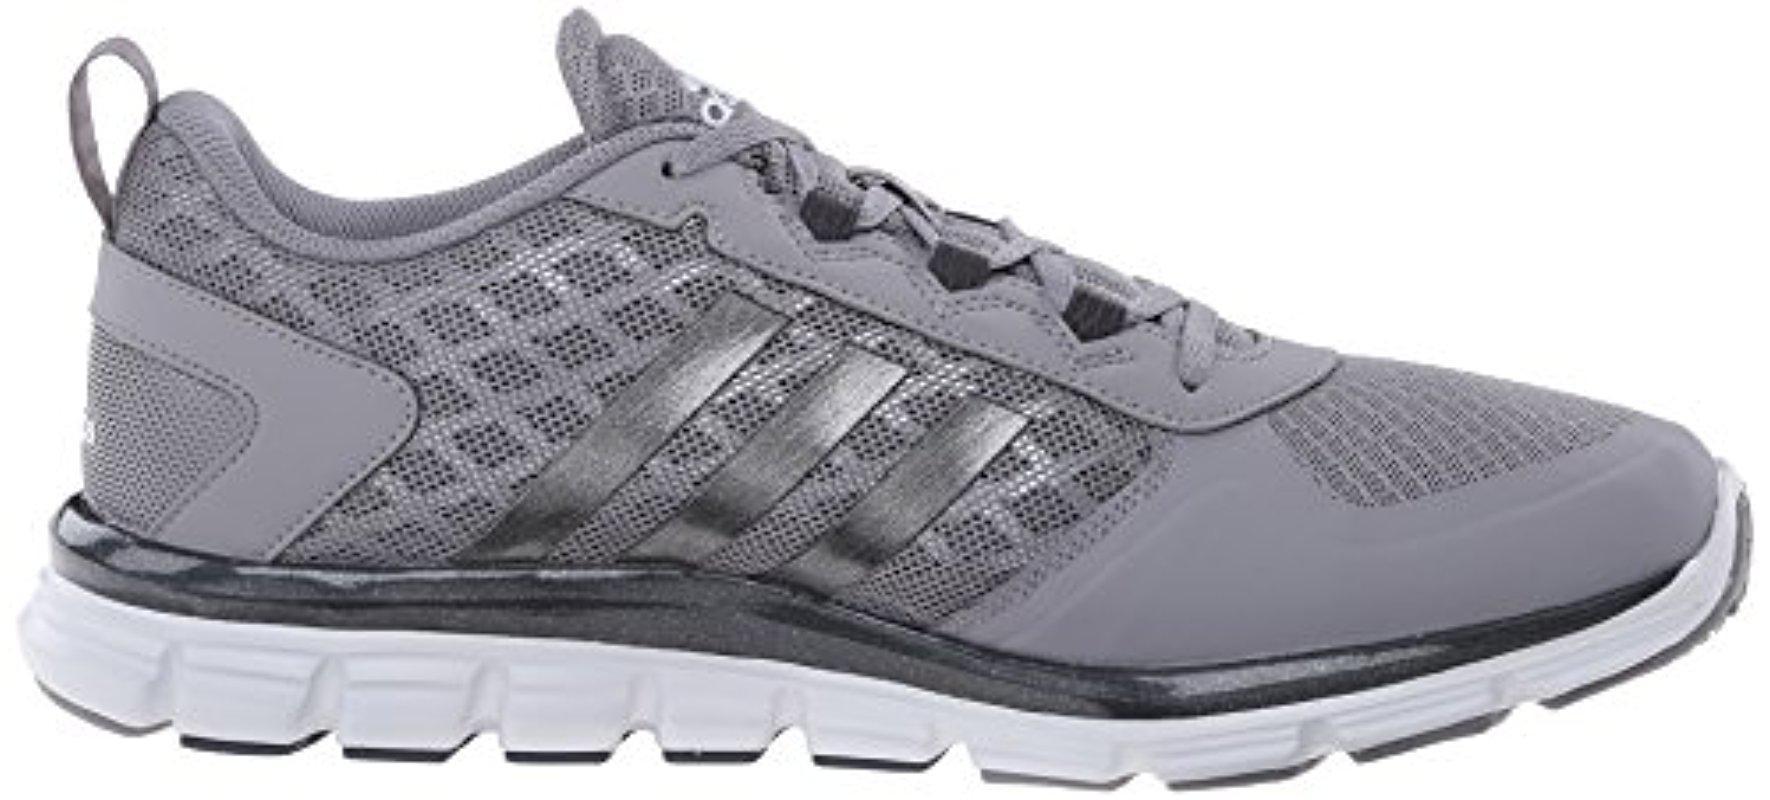 Lyst - adidas Performance Speed Trainer 2 Training Shoe in Gray for Men 0328fab2f